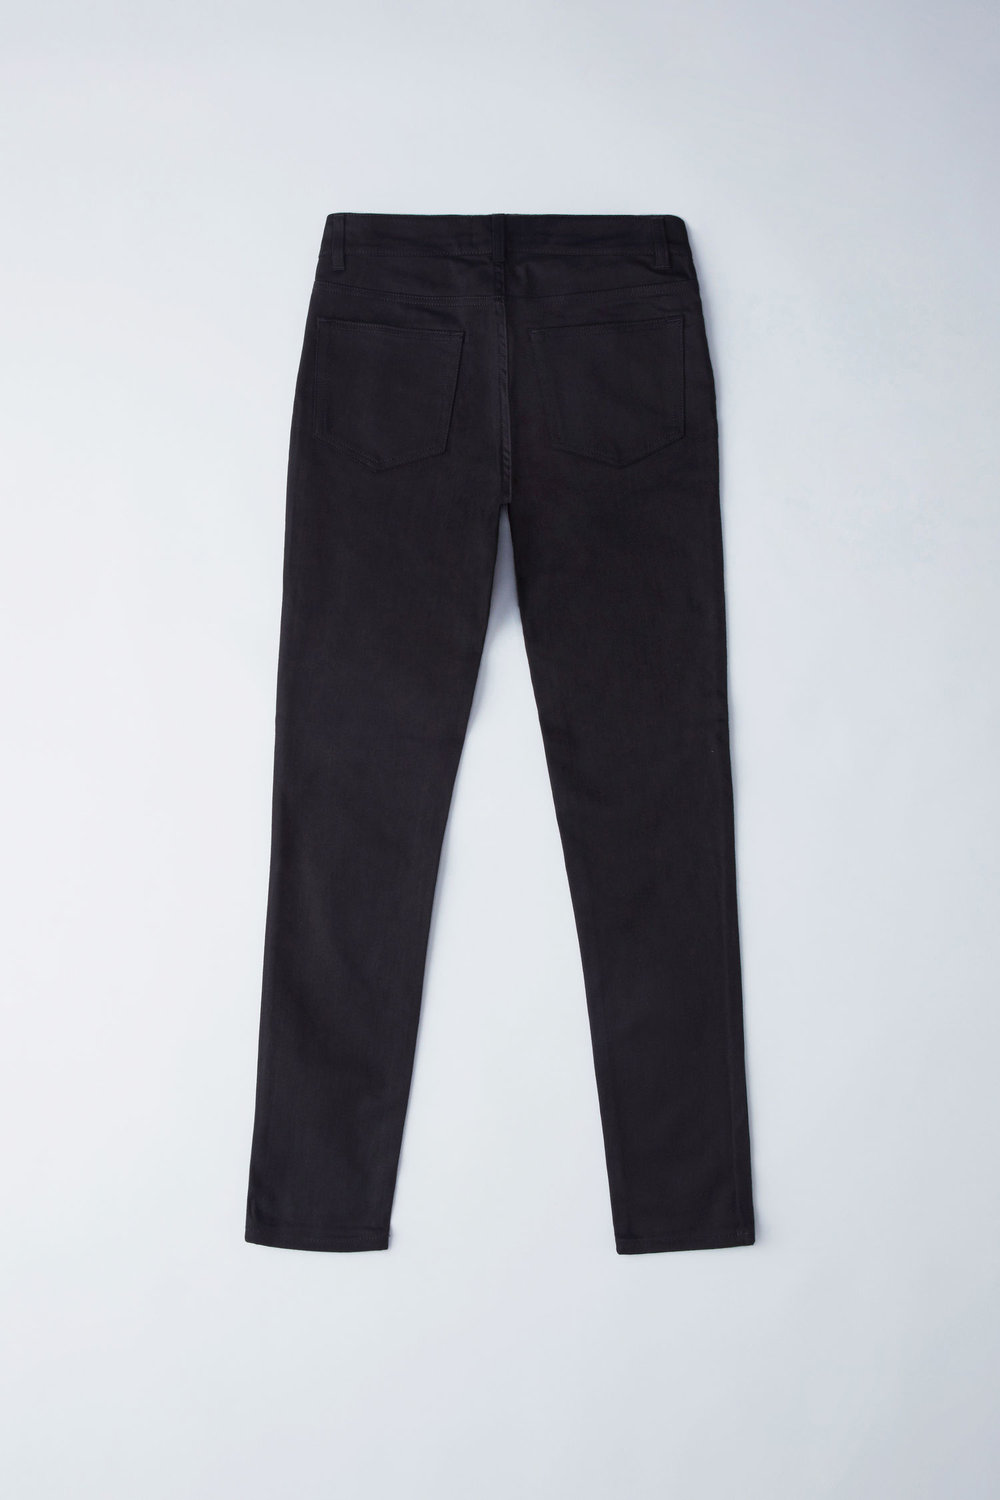 Acne_studios_thin_stay_cash_jeans 2.jpg